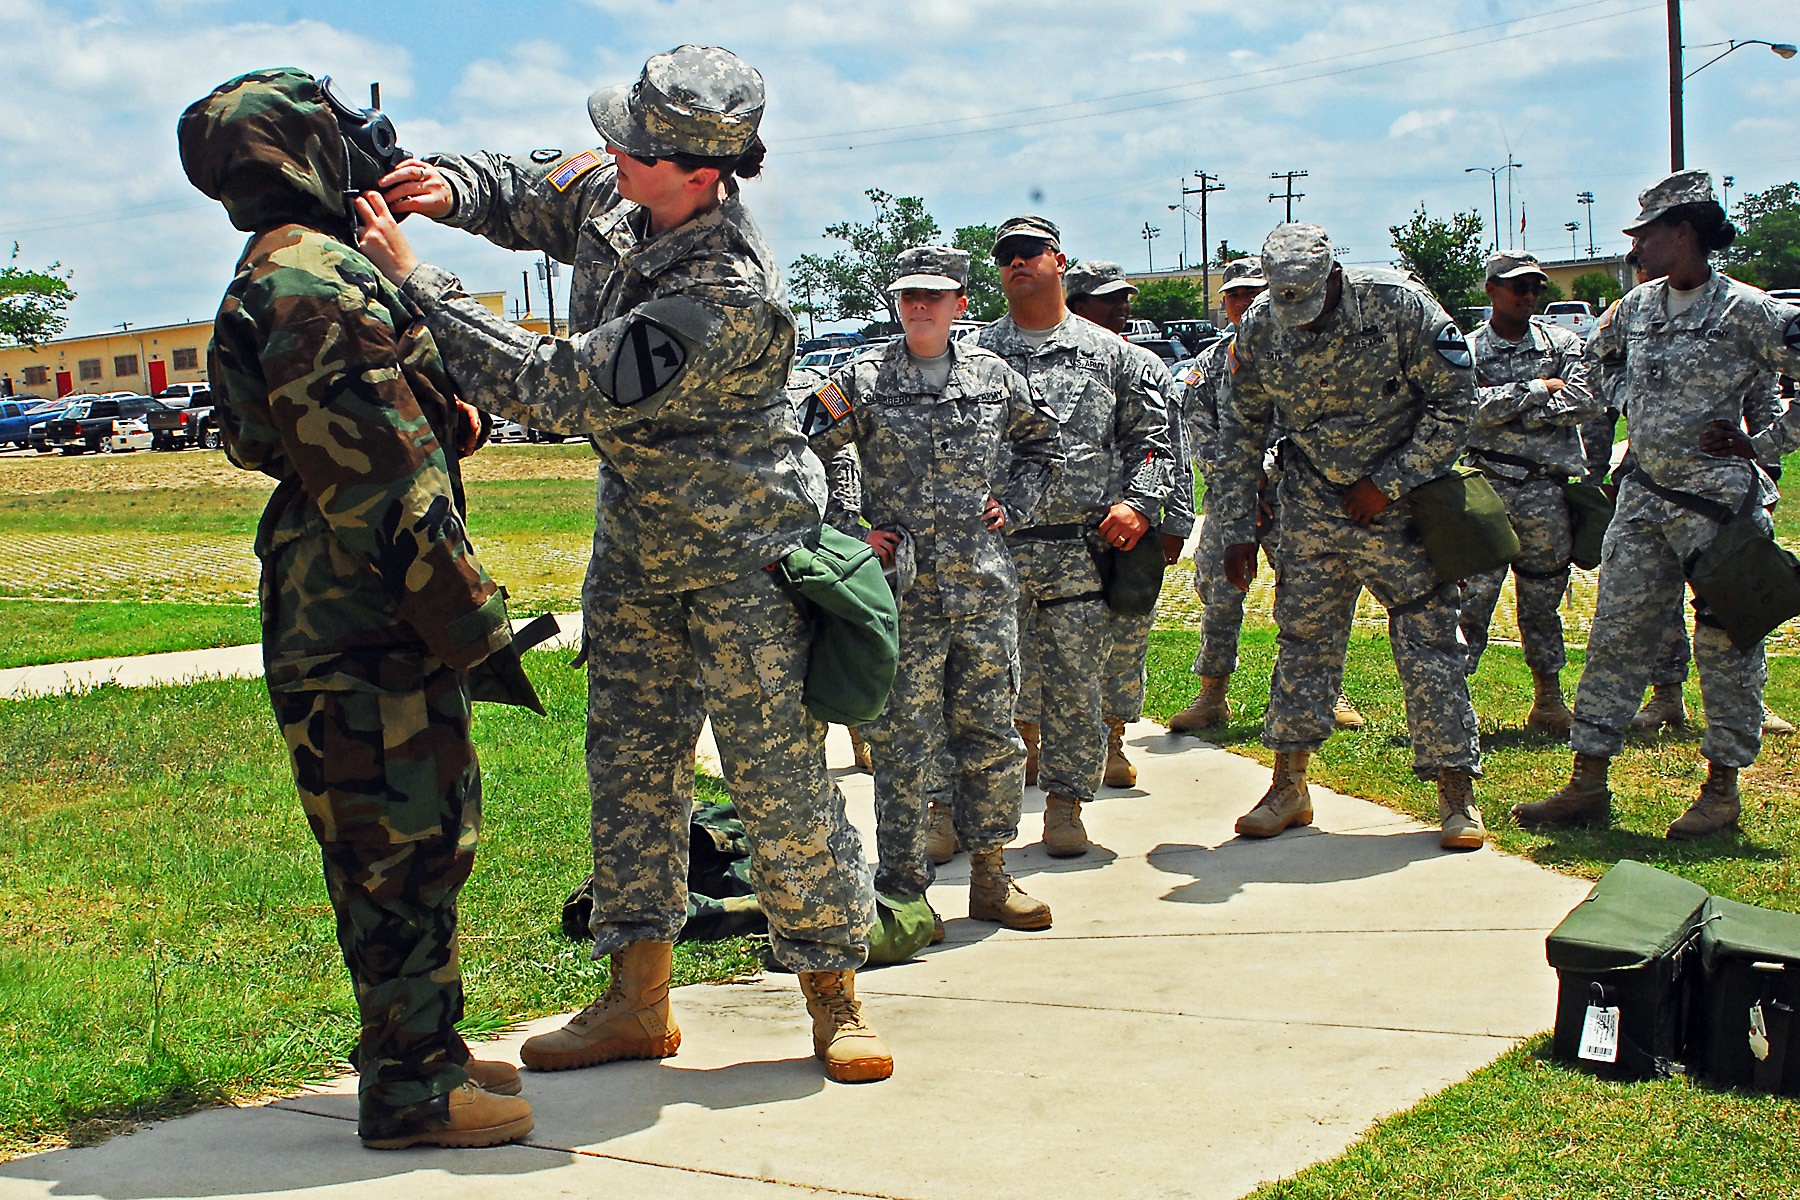 Hammer Troop Nails Down Cbrn Training Article The